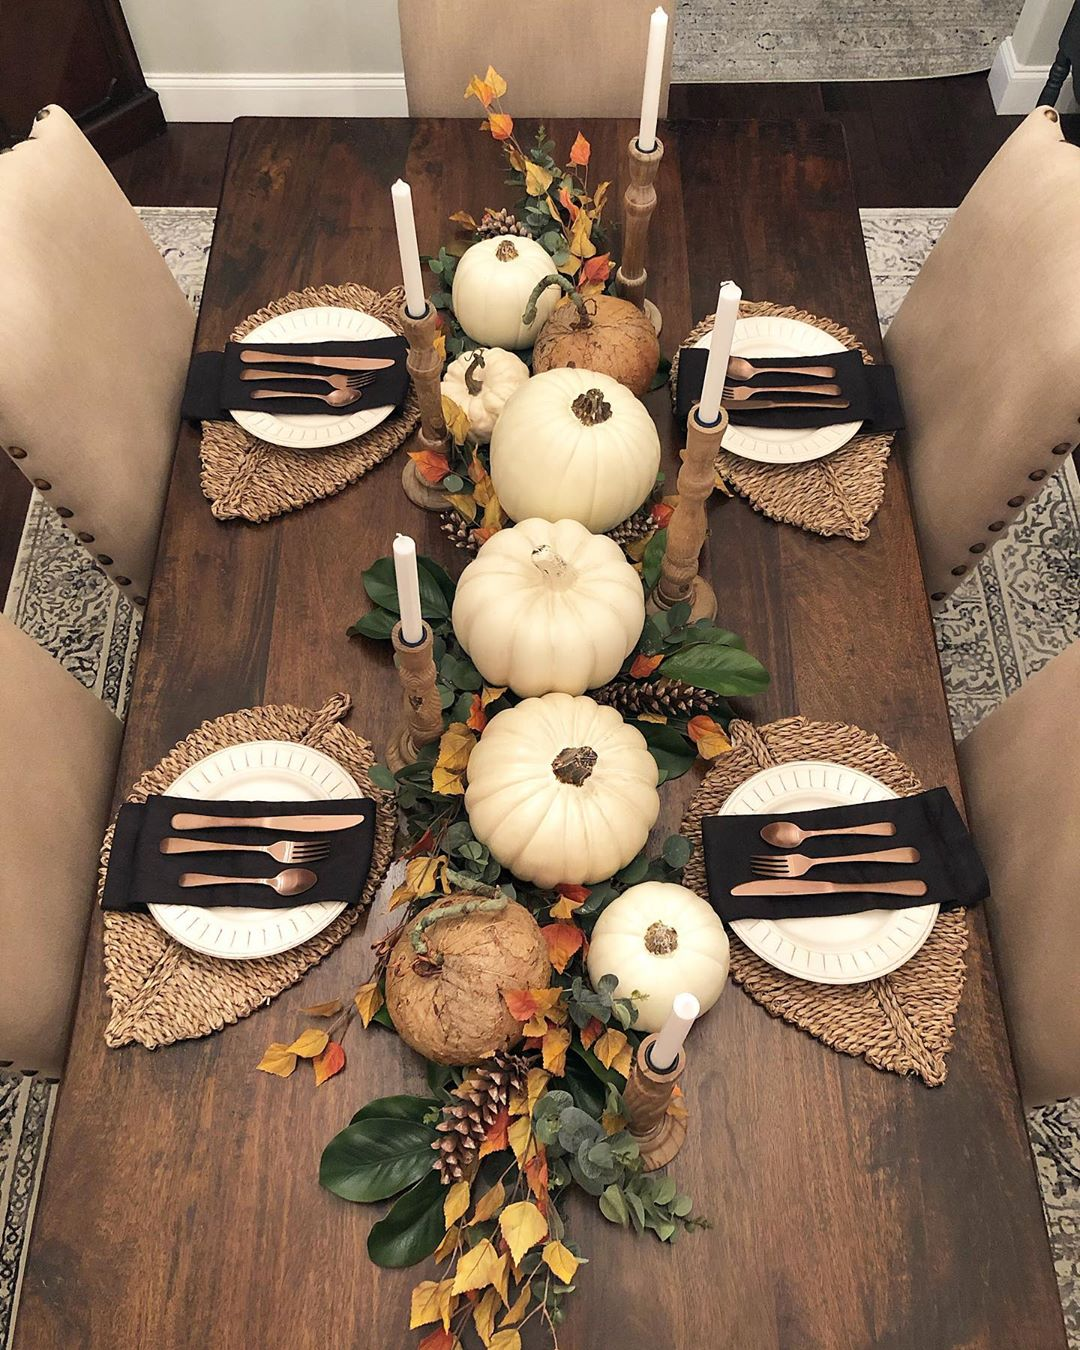 1570190898 86 funky fresh fall tablescapes from instagram - Funky Fresh Fall Tablescapes From Instagram